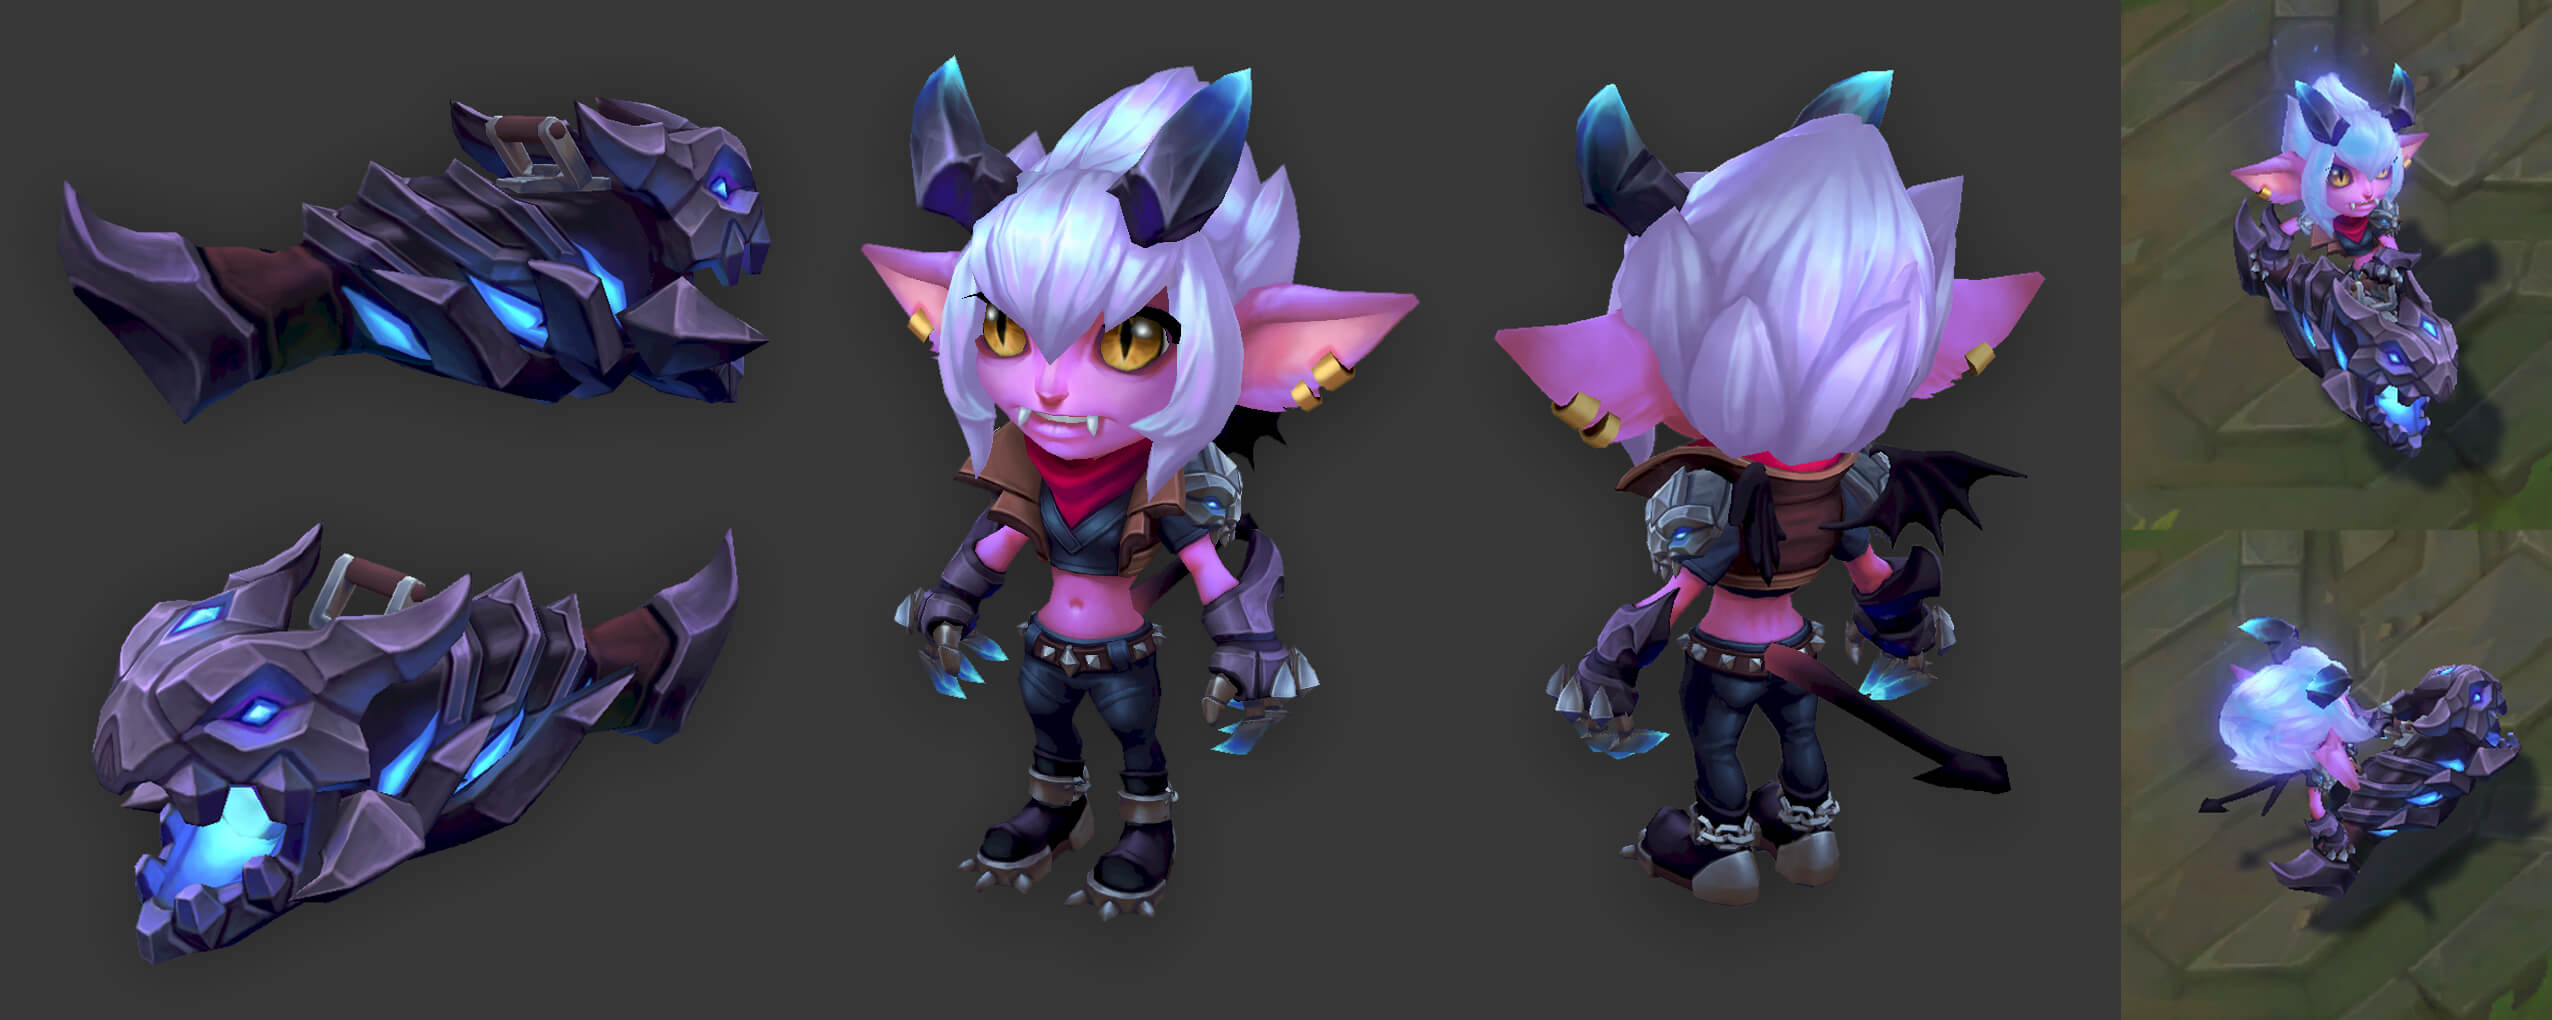 (Mostly) Final Texture for Little Demon Tristana